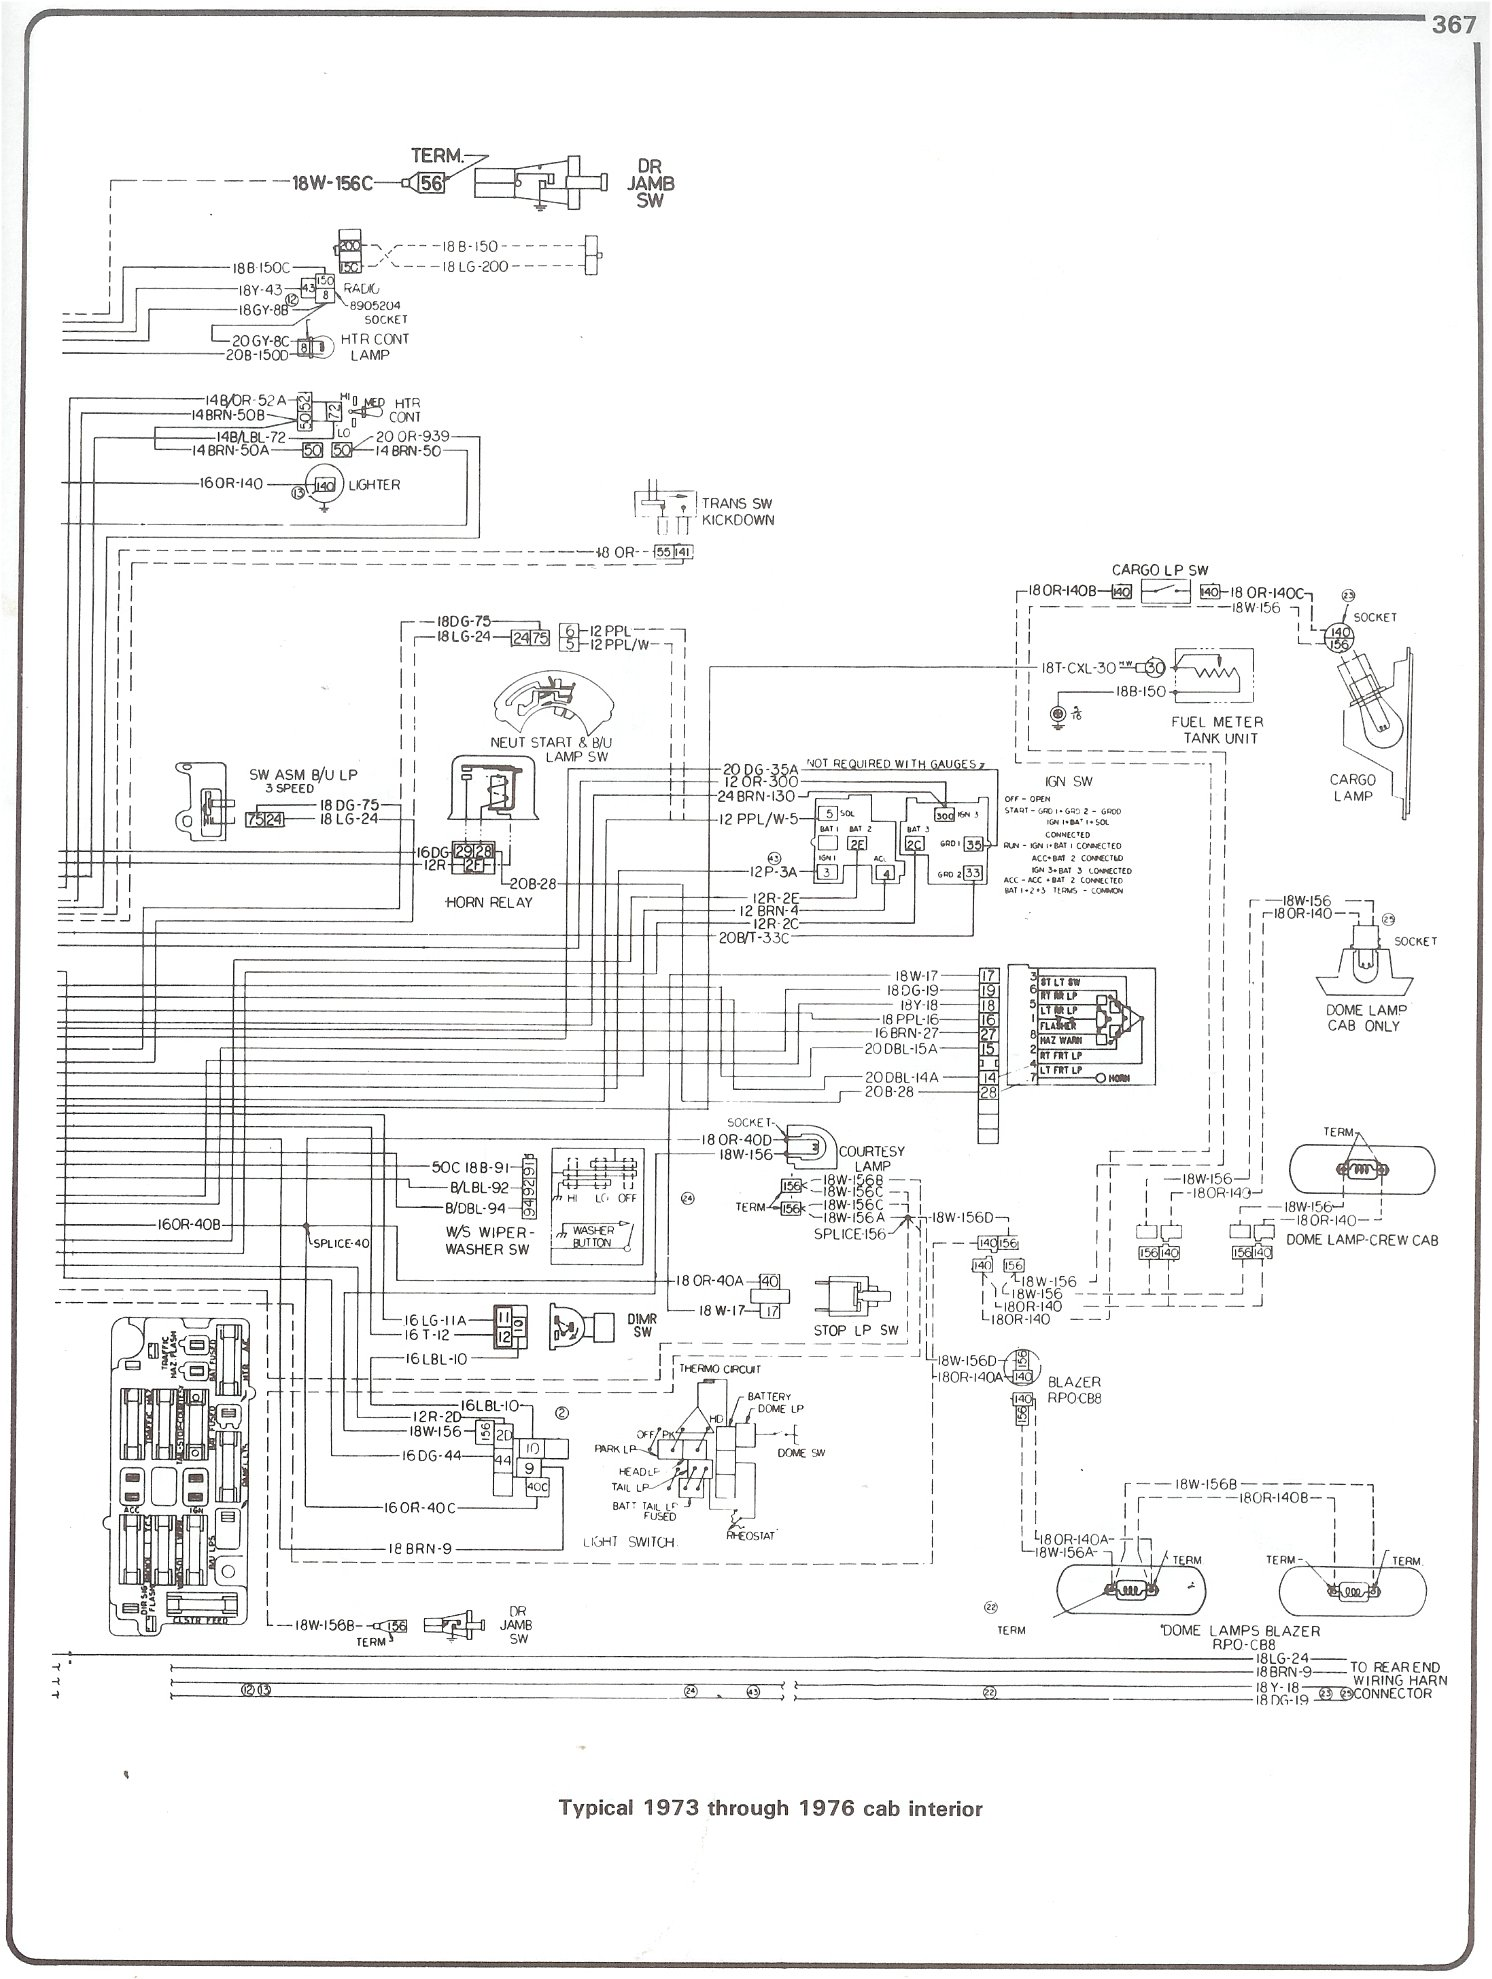 73 76_cab_inter complete 73 87 wiring diagrams 1973 mustang wiring diagram at gsmx.co